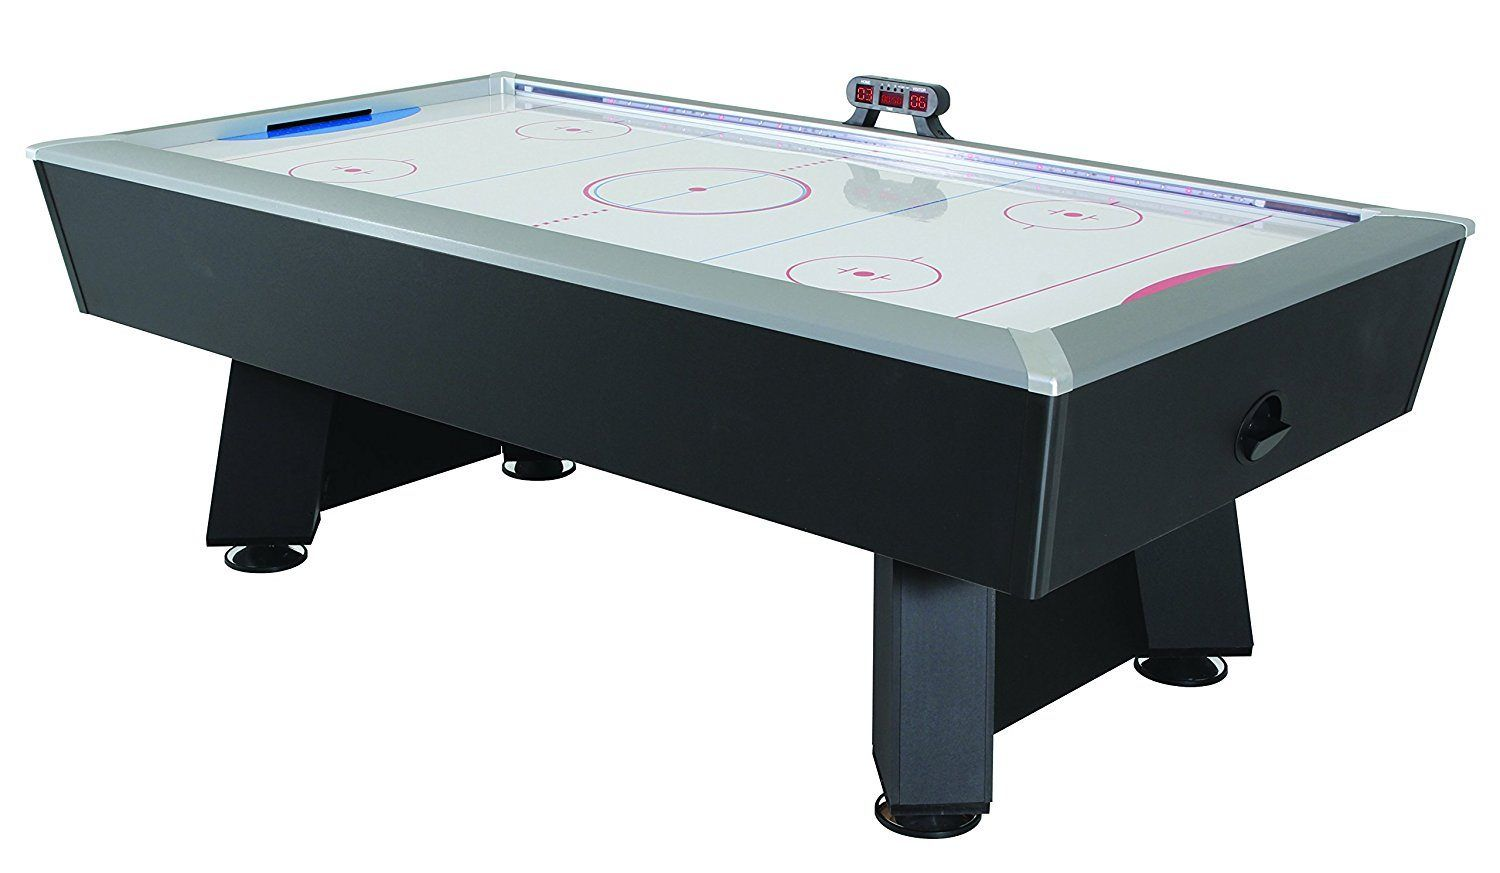 Pin By Hockey Geeky On Best Air Hockey Table Air Hockey Table Air Hockey American Legend